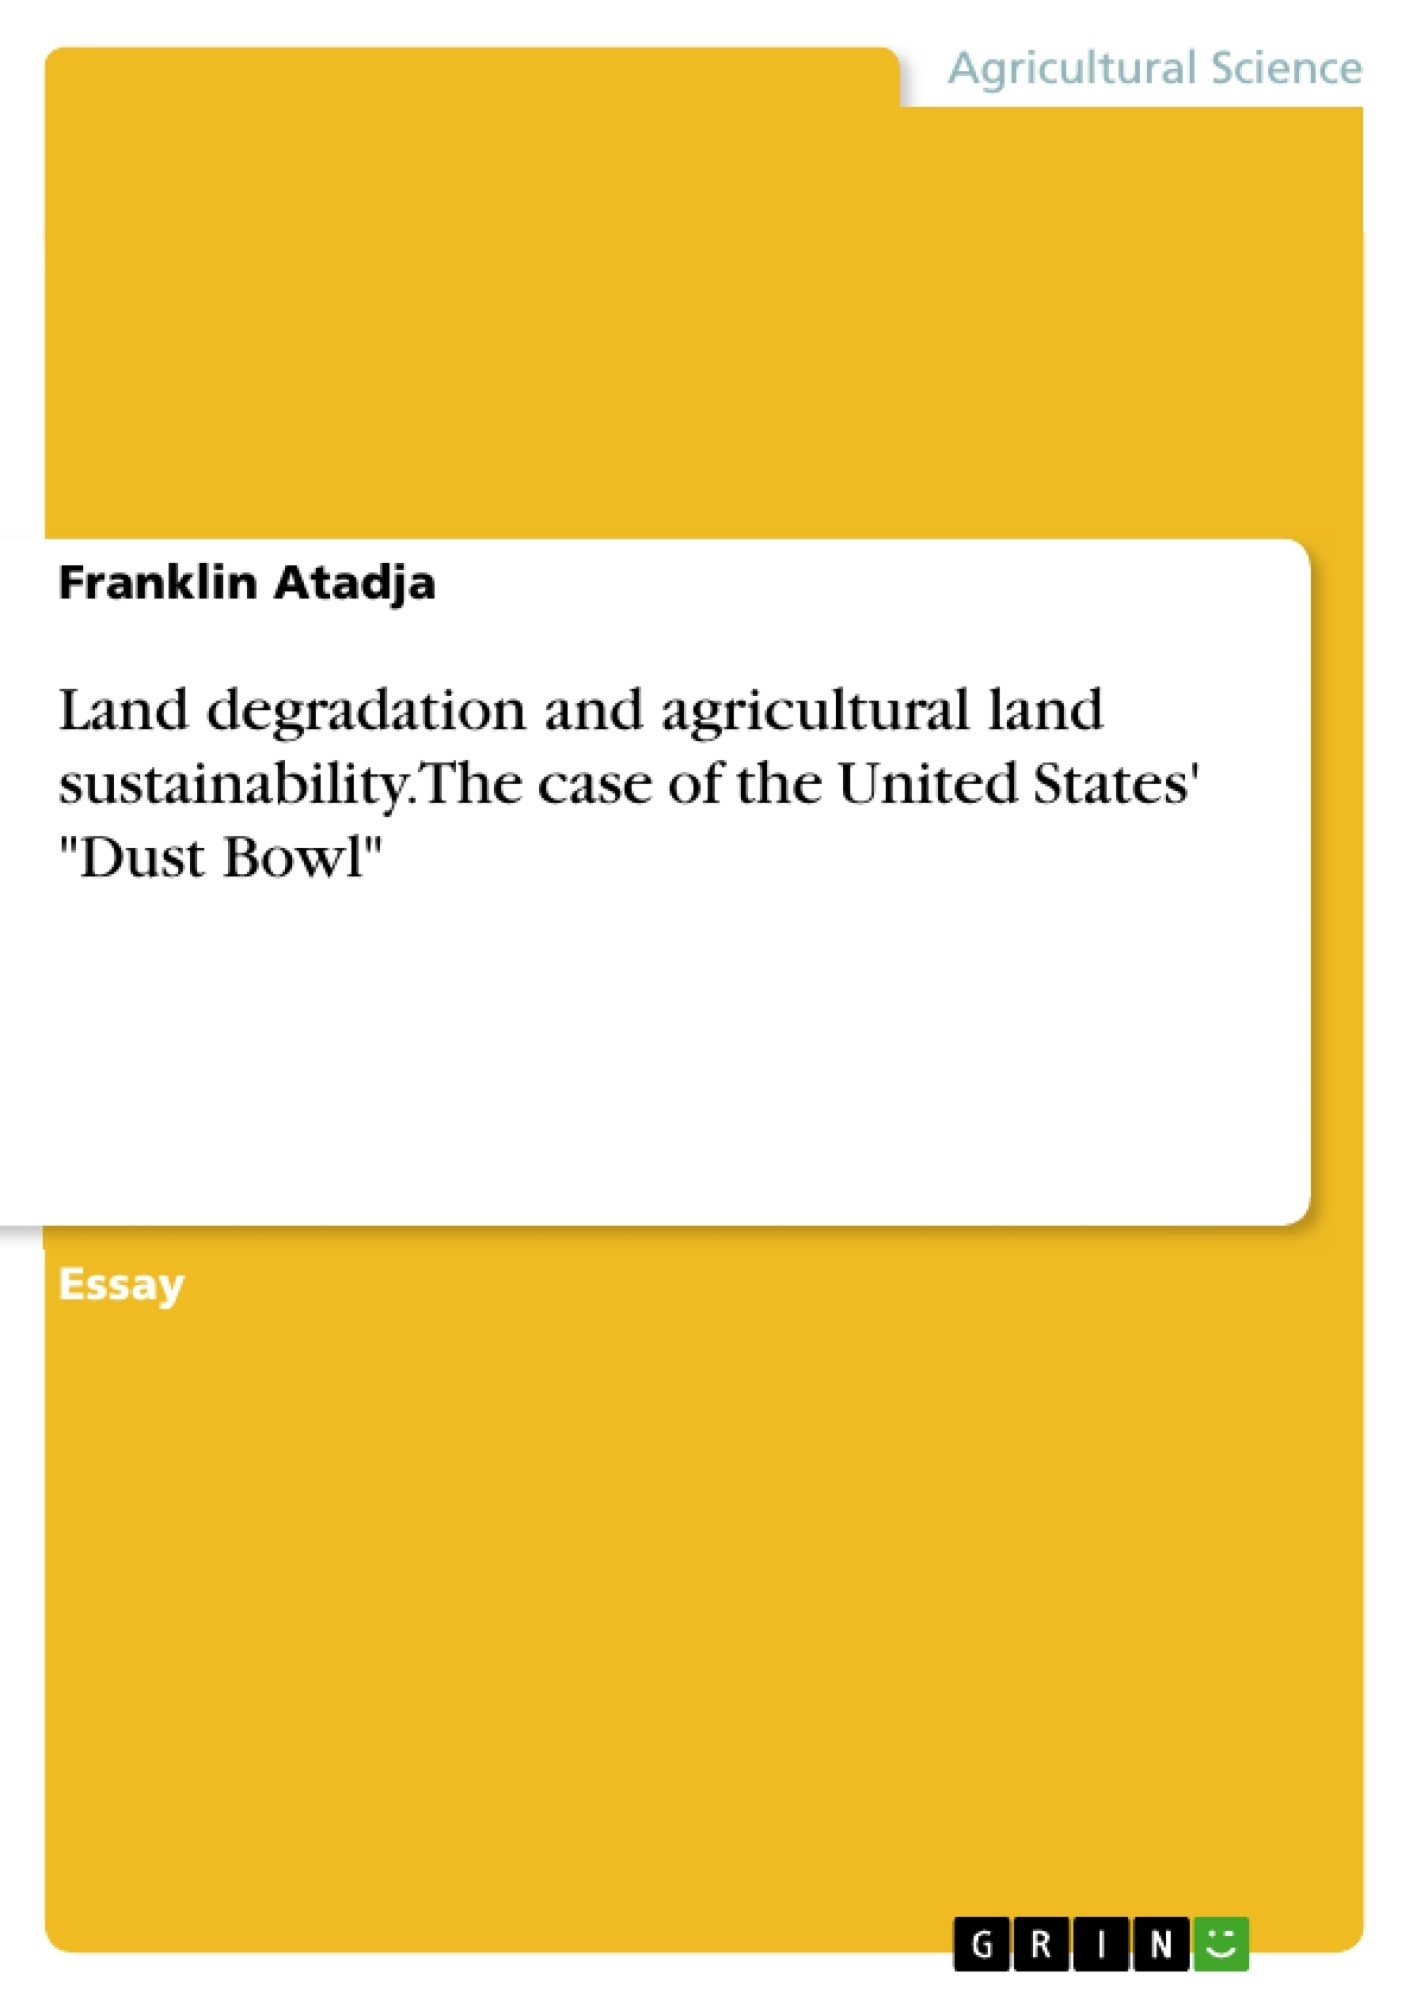 """Title: Land degradation and agricultural land sustainability. The case of the United States' """"Dust Bowl"""""""